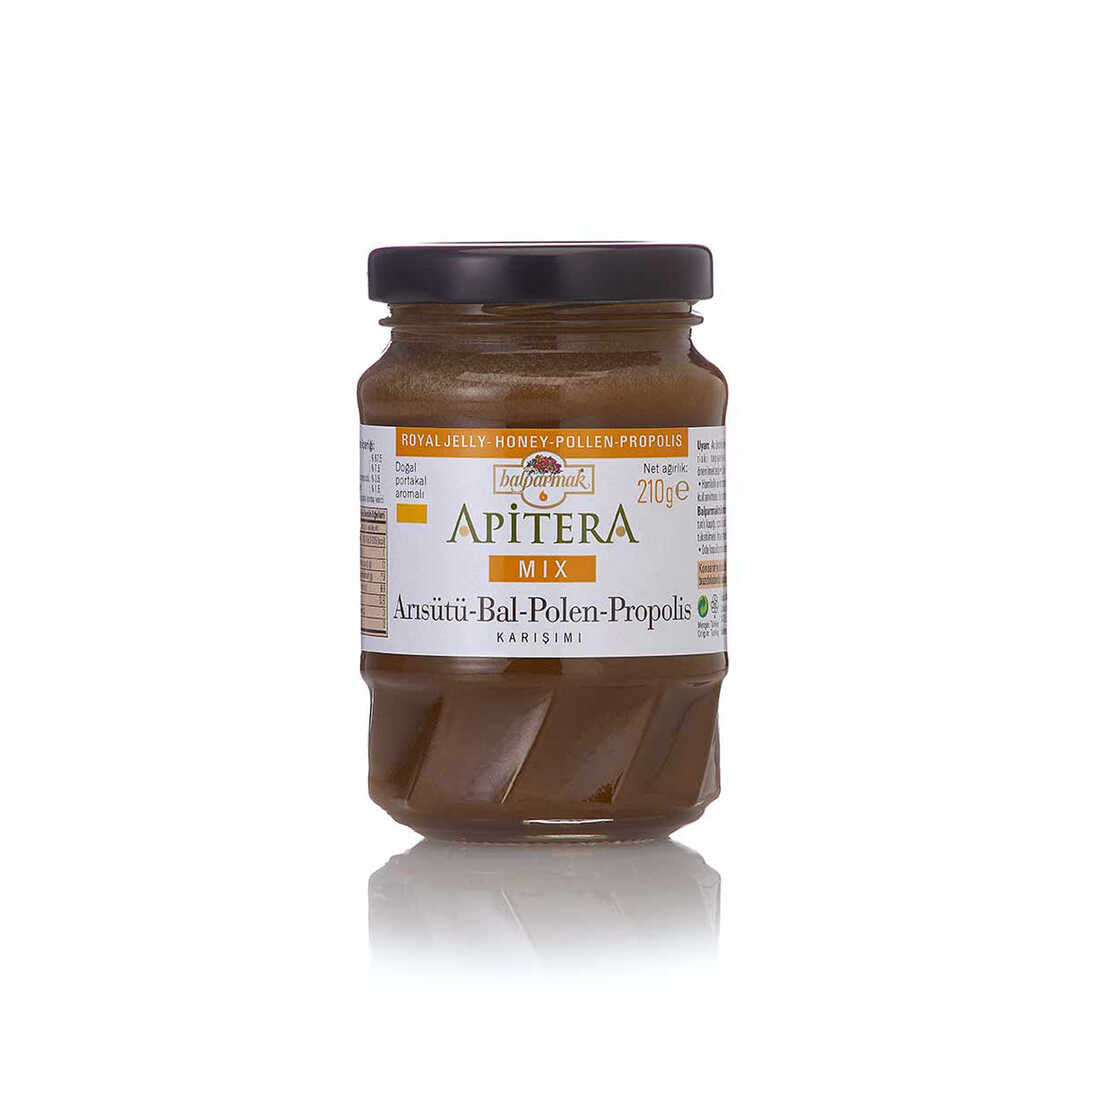 Royal Jelly Honey Pollen Propolis Mix - TurkishTaste.com